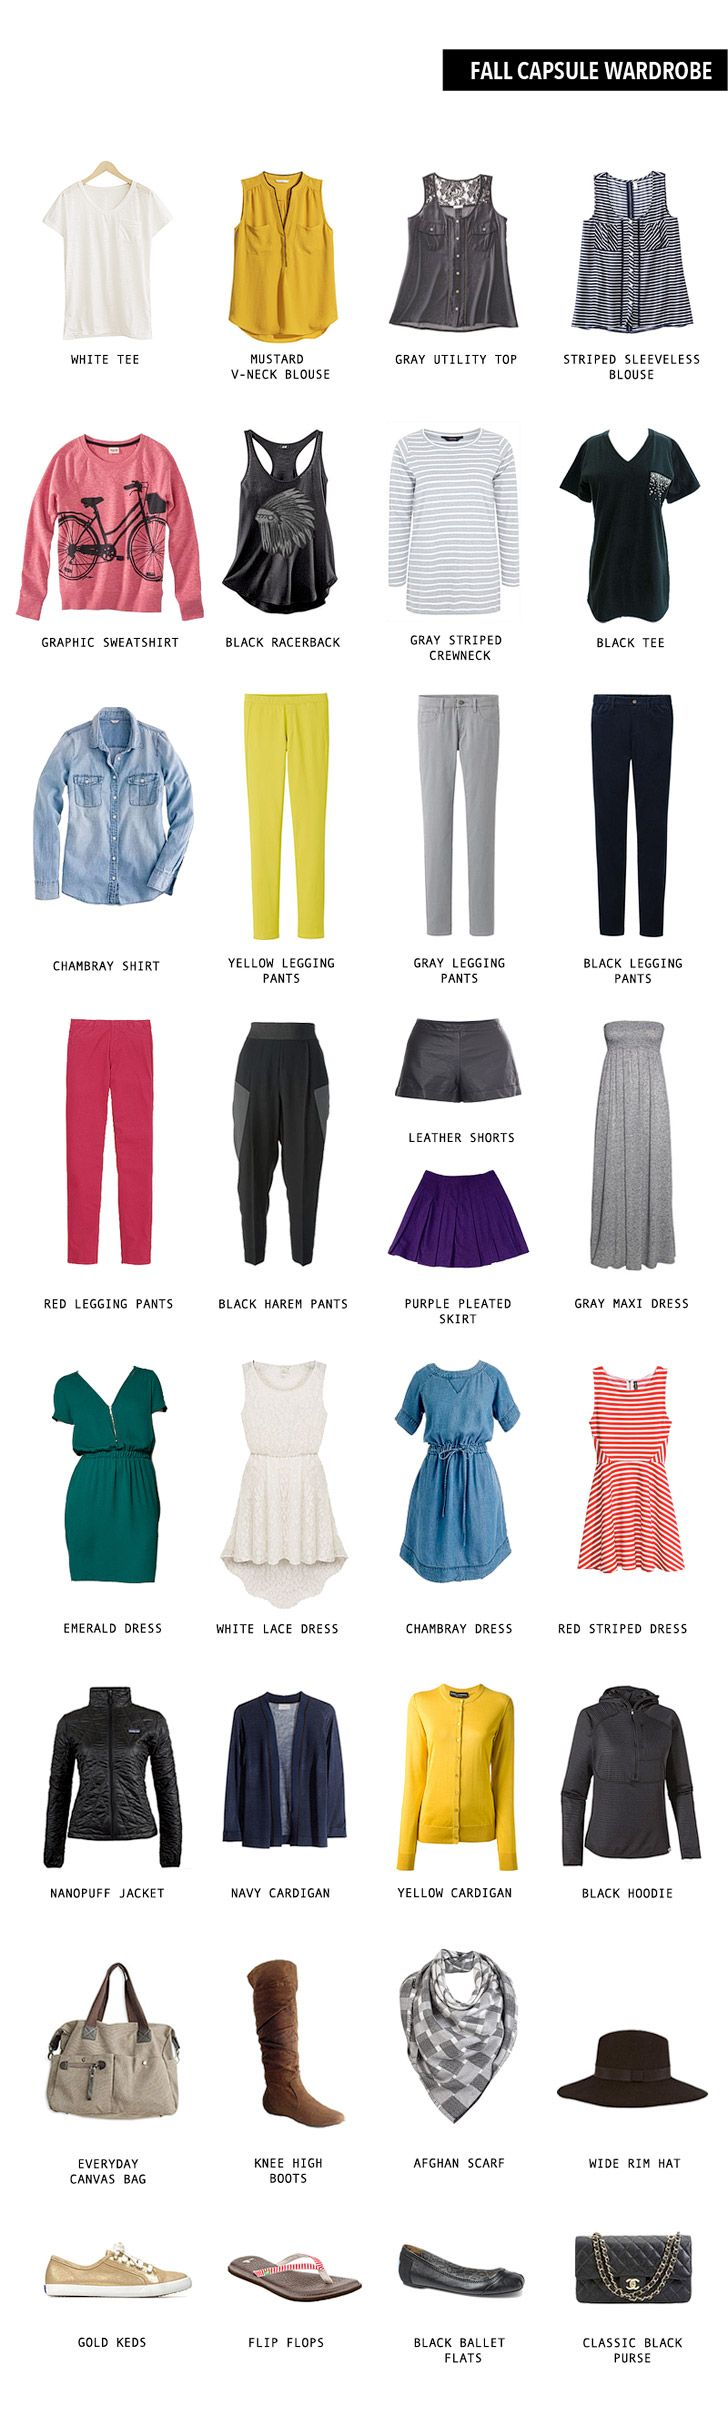 I'm re-evaluating my current wardrobe for project 333 and putting together my fall capsule wardrobe. A couple things I've learned already from my first go.